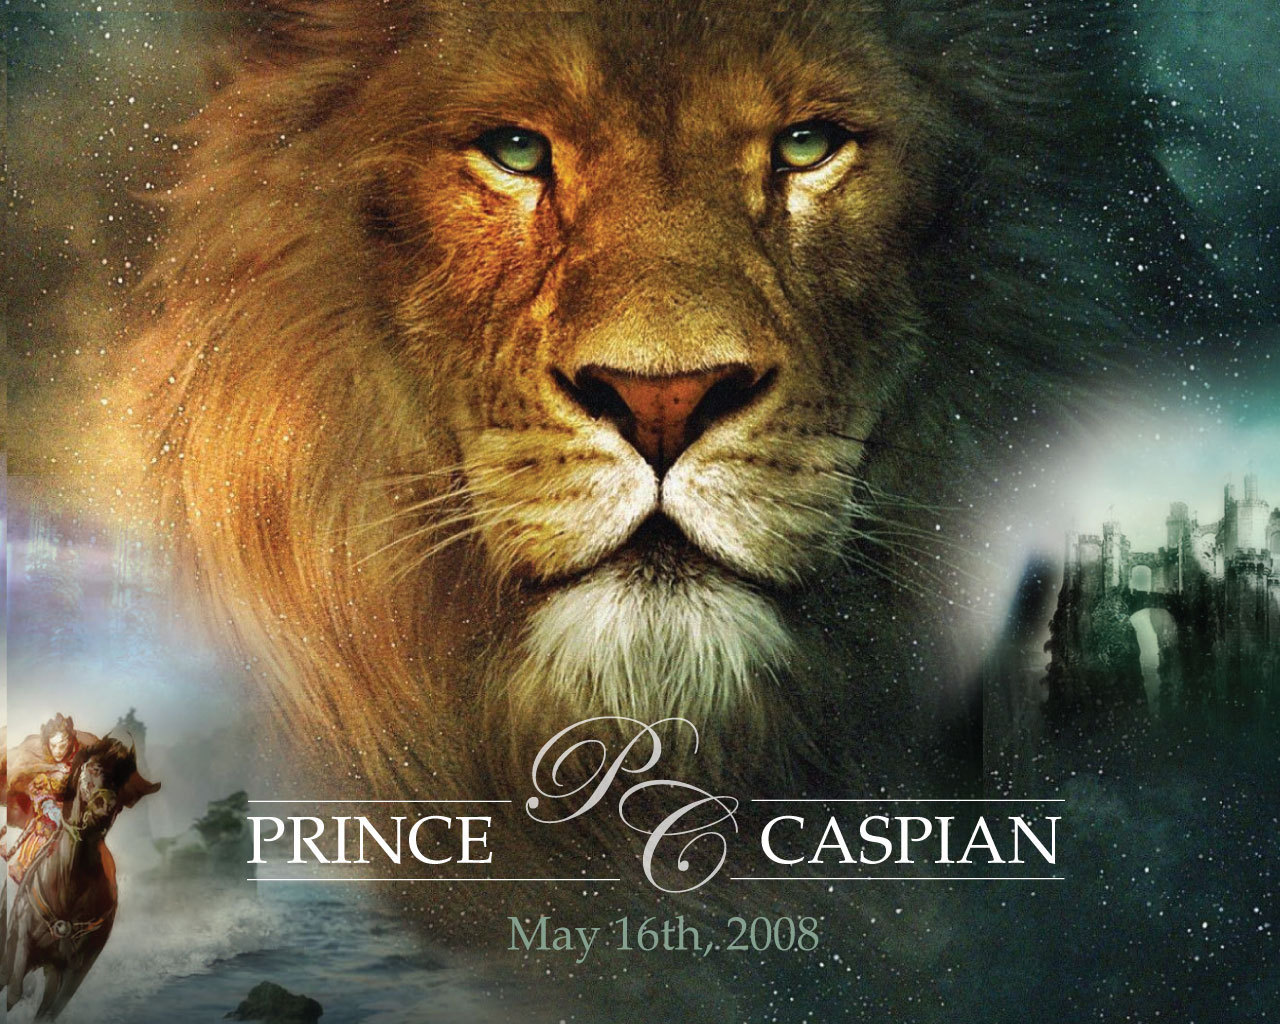 christianity in the chronicles of narnia the lion the witch and the wardrobe by c s lewis Although many christians believe c s lewis to be a christian writer, this former   entitled the chronicles of narnia the lion, the witch, and the wardrobe.